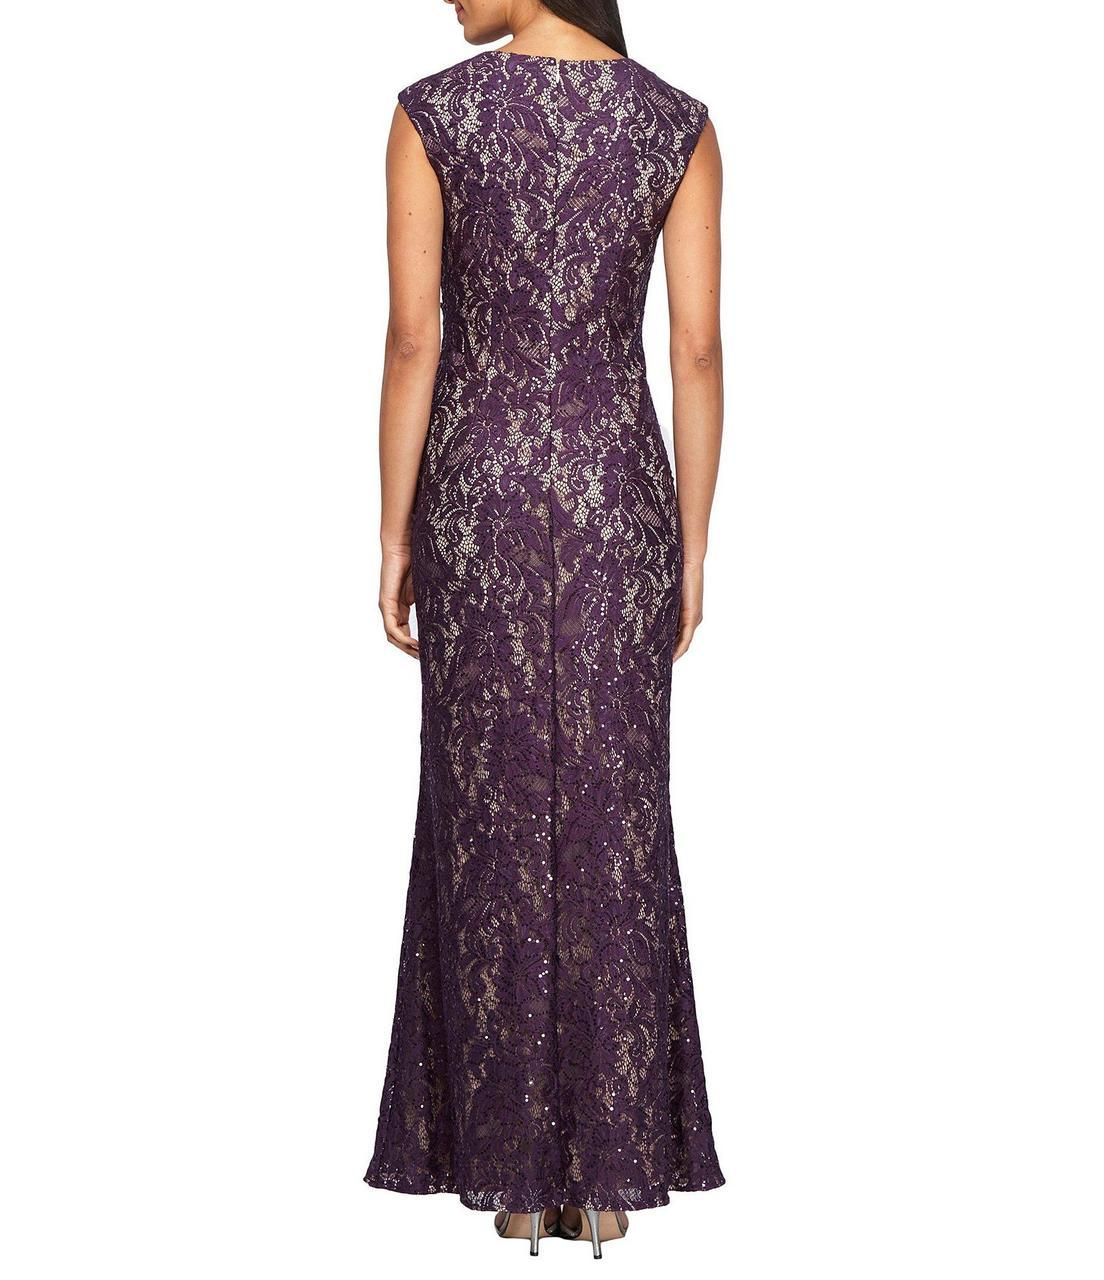 Alex Evenings - 1121596 Embroidered Lace Front Cut Out Dress in Purple